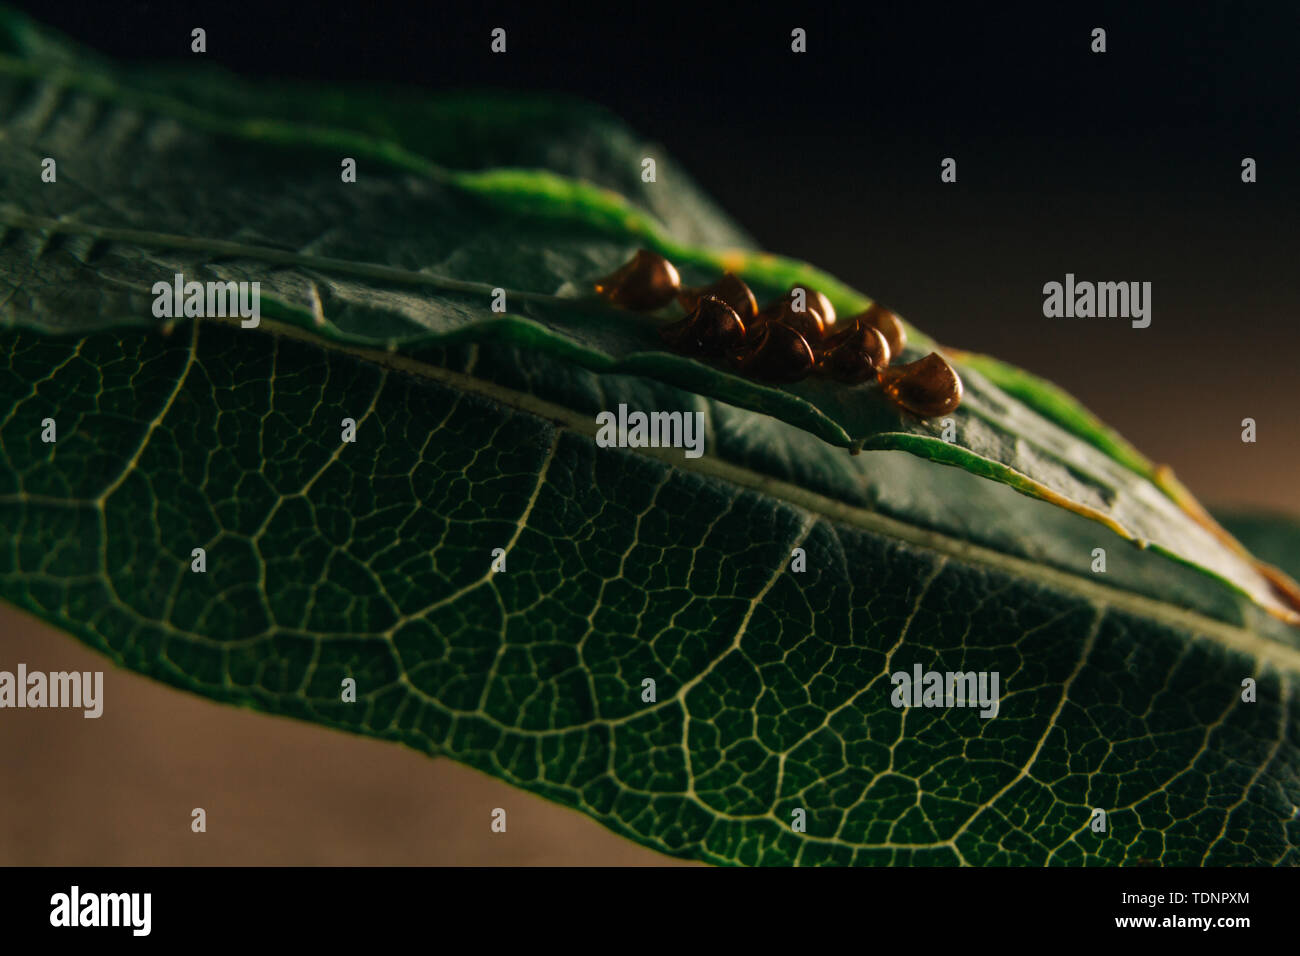 Insect Eggs Stock Photos & Insect Eggs Stock Images - Alamy